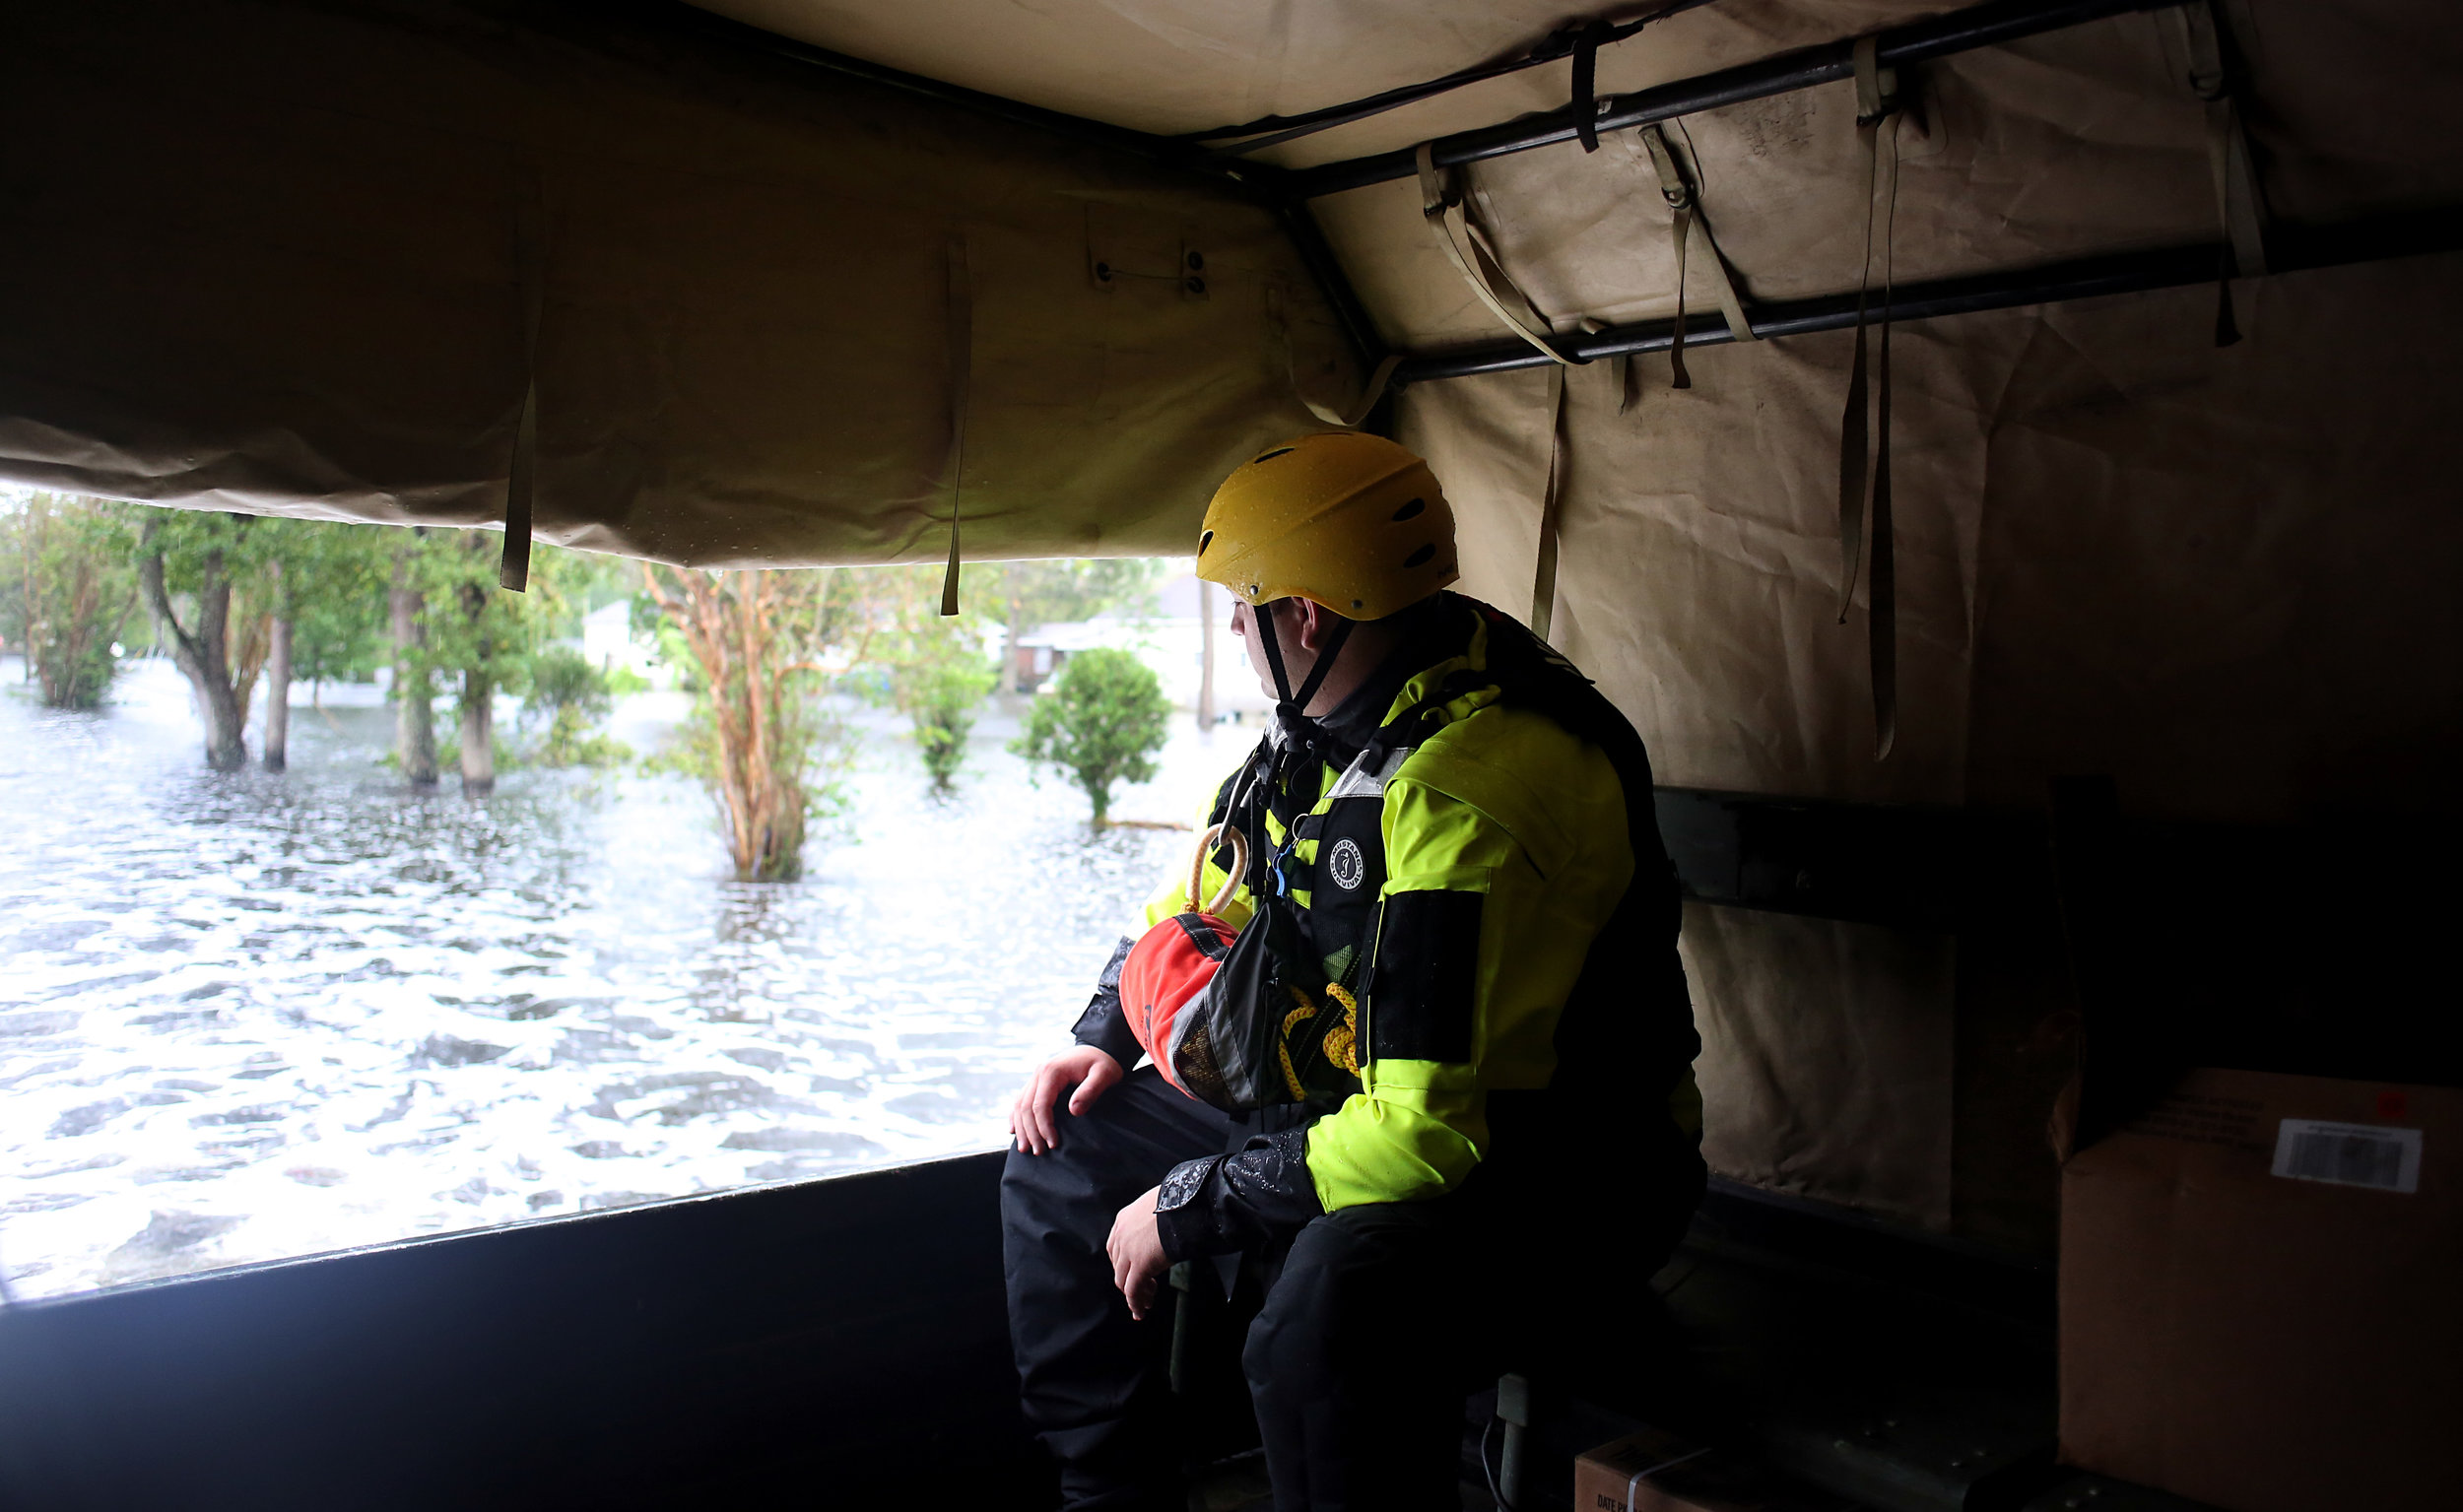 A member of North Carolina Task Force 10 looks out at floodwaters from the back of a national guard LMTV as a mixed unit of guardsmen and rescue personnel conducted welfare checks, Sept. 15 in New Bern, N.C.